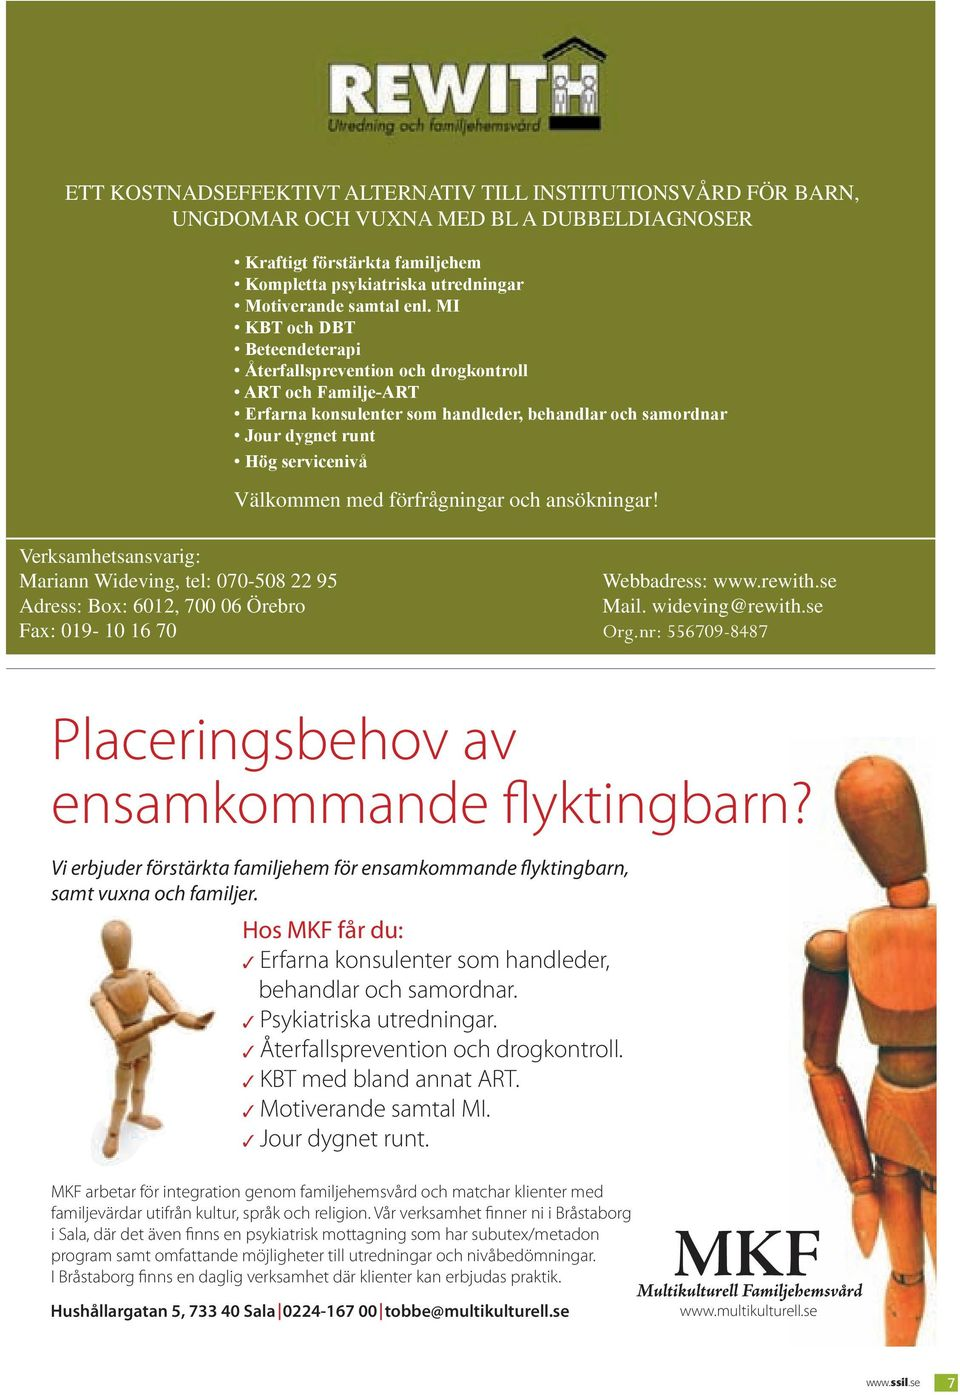 förfrågningar och ansökningar! Verksamhetsansvarig: Mariann Wideving, tel: 070-508 22 95 Webbadress: www.rewith.se Adress: Box: 6012, 700 06 Örebro Mail. wideving@rewith.se Fax: 019-10 16 70 Org.